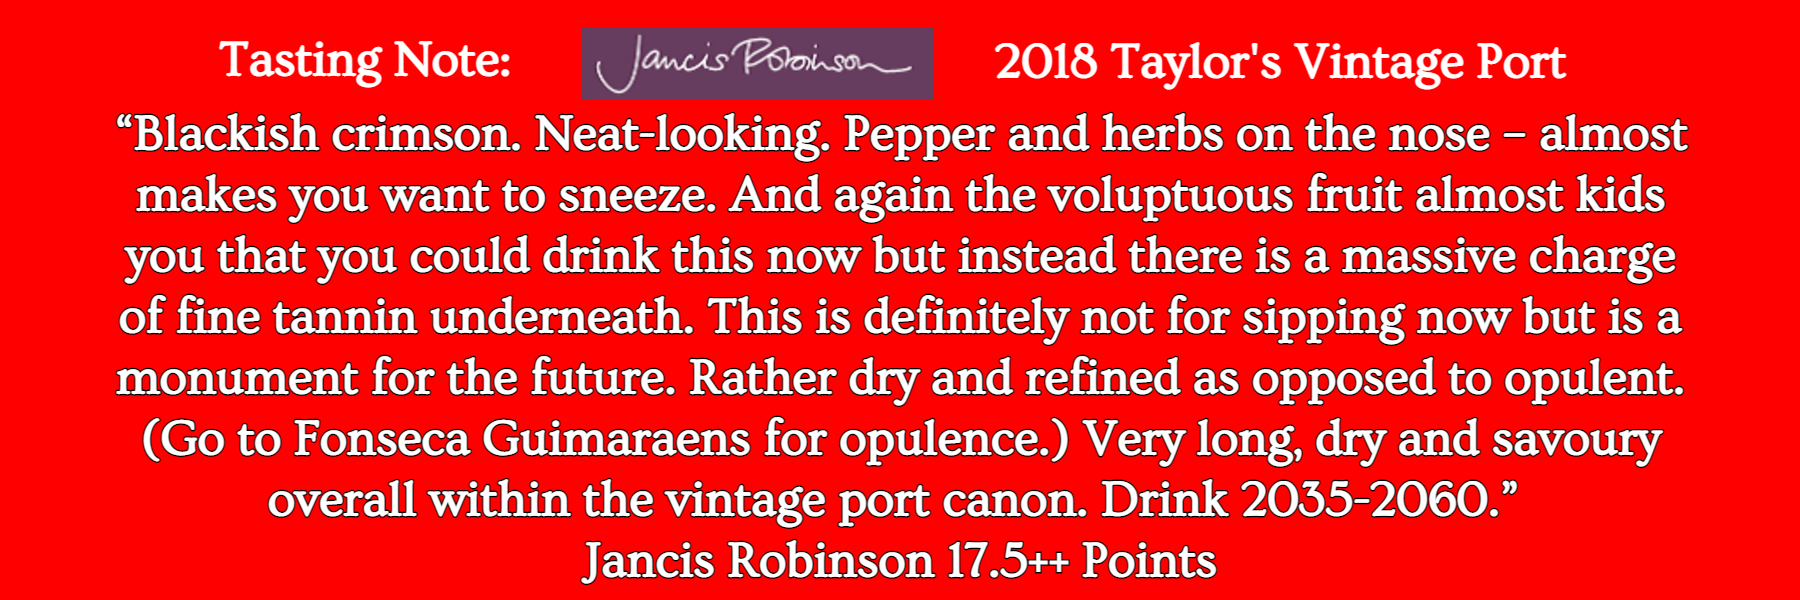 Jancis Robinson Tasting Note 2018 Taylor's Vintage Port